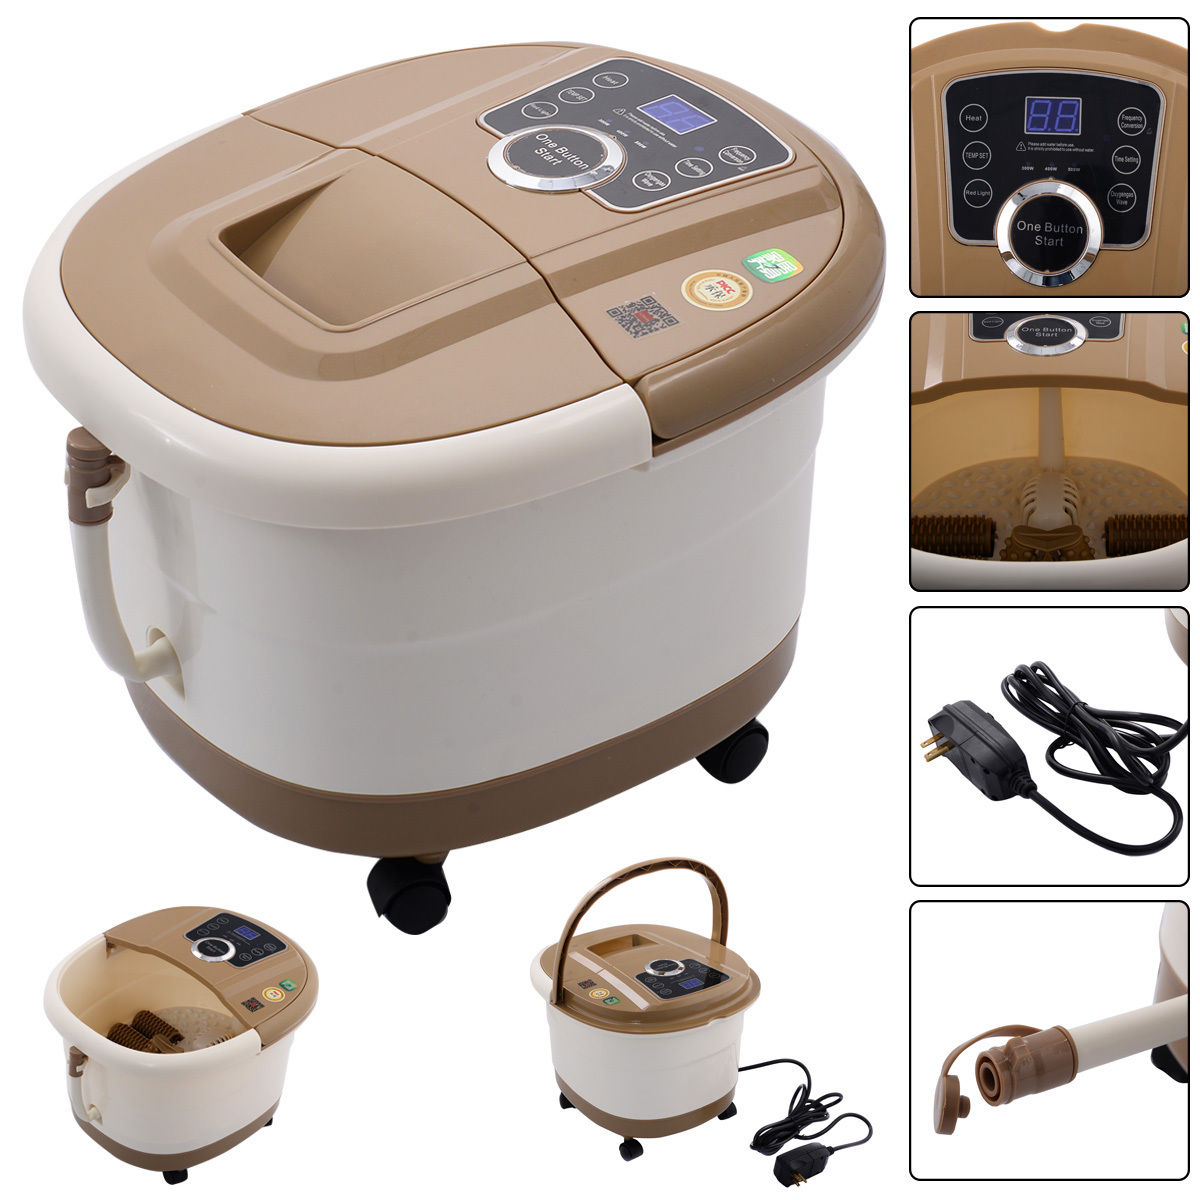 Portable Foot Spa Bath Massager Bubble Heat LED Display Vibration Infrared Relax HW52579